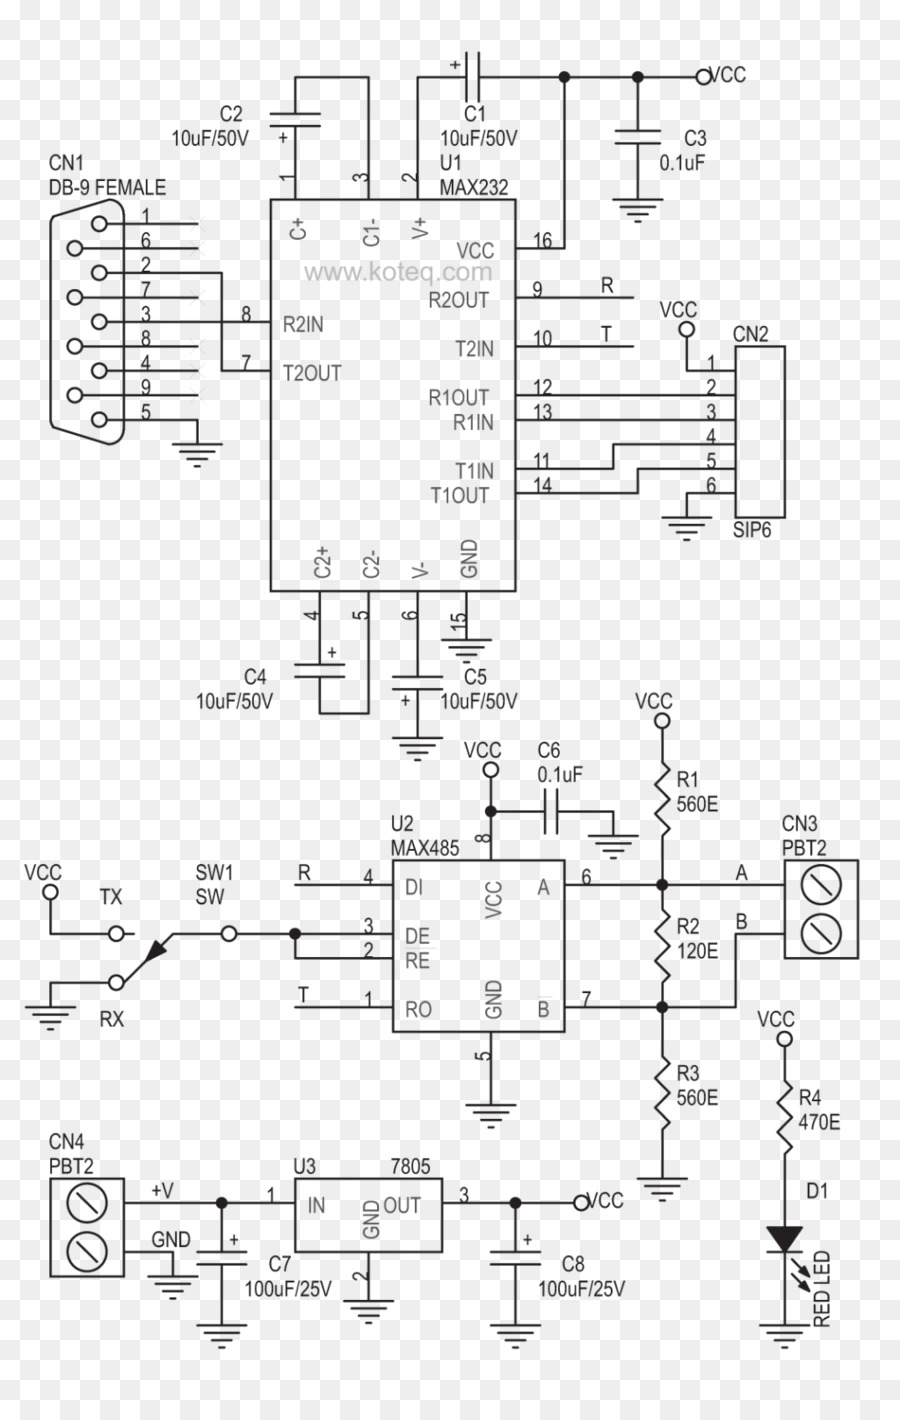 240v photocell wiring diagram uk dmx lighting control twisted cable schematic | library